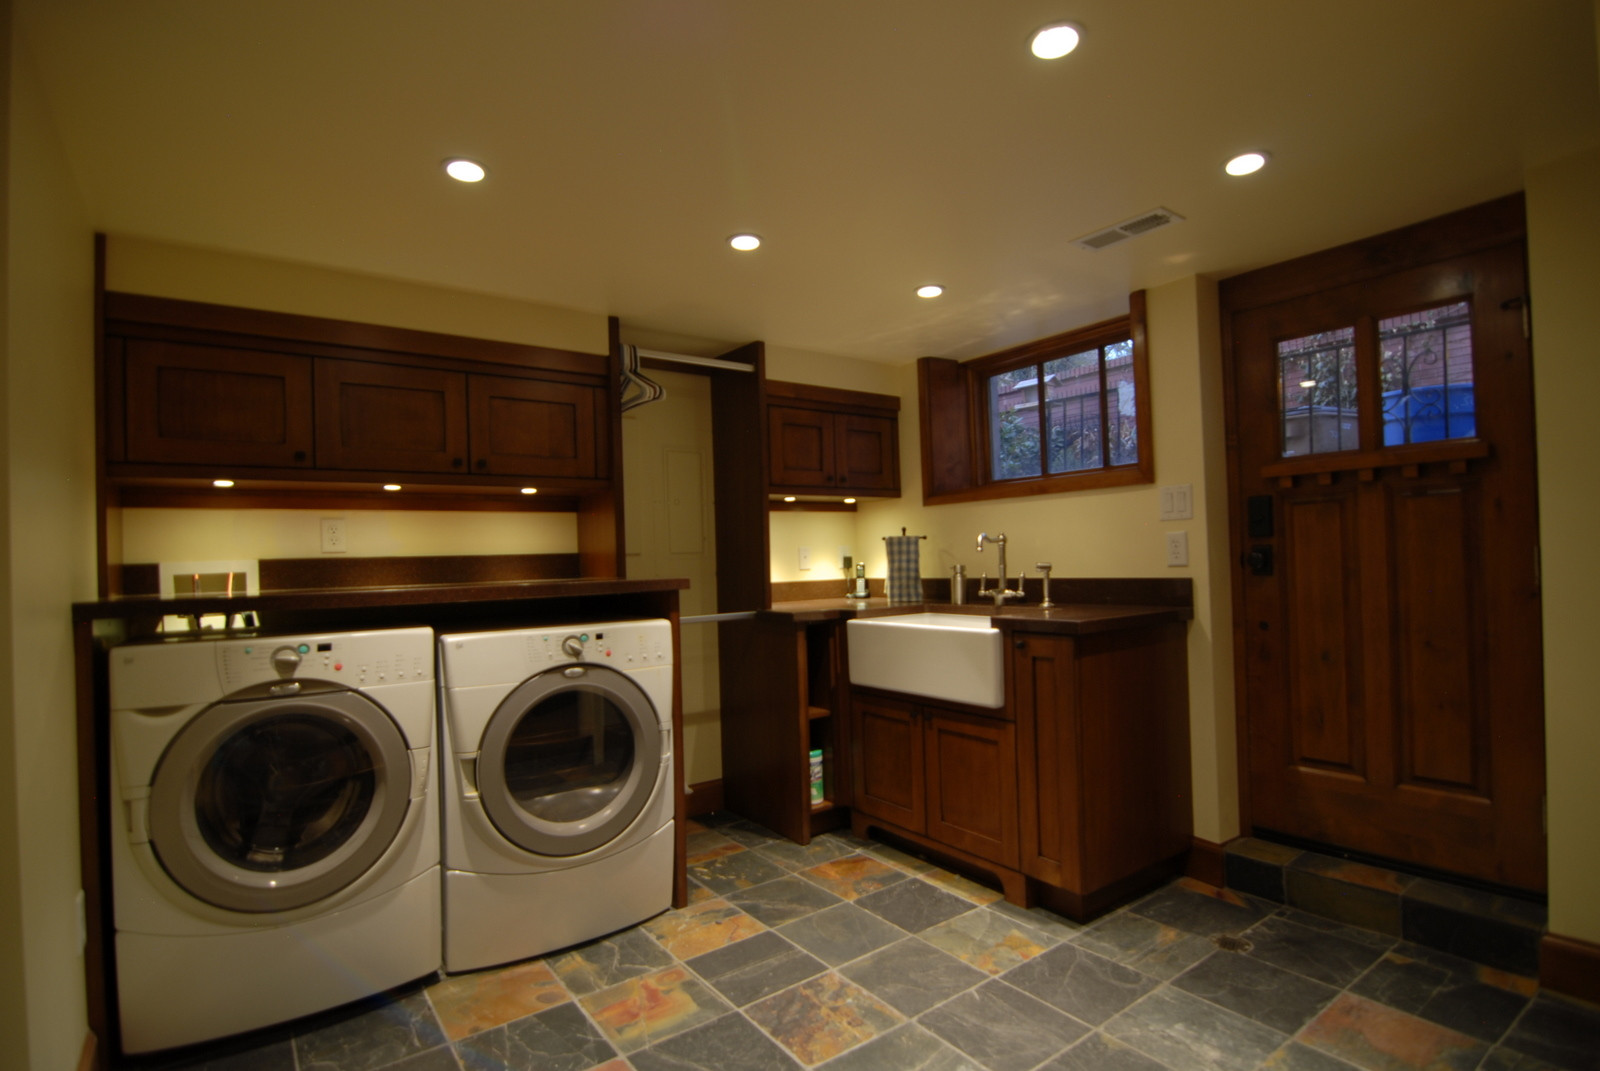 Best ideas about Basement Laundry Room Ideas . Save or Pin Laundry Room Lighting 101 Now.